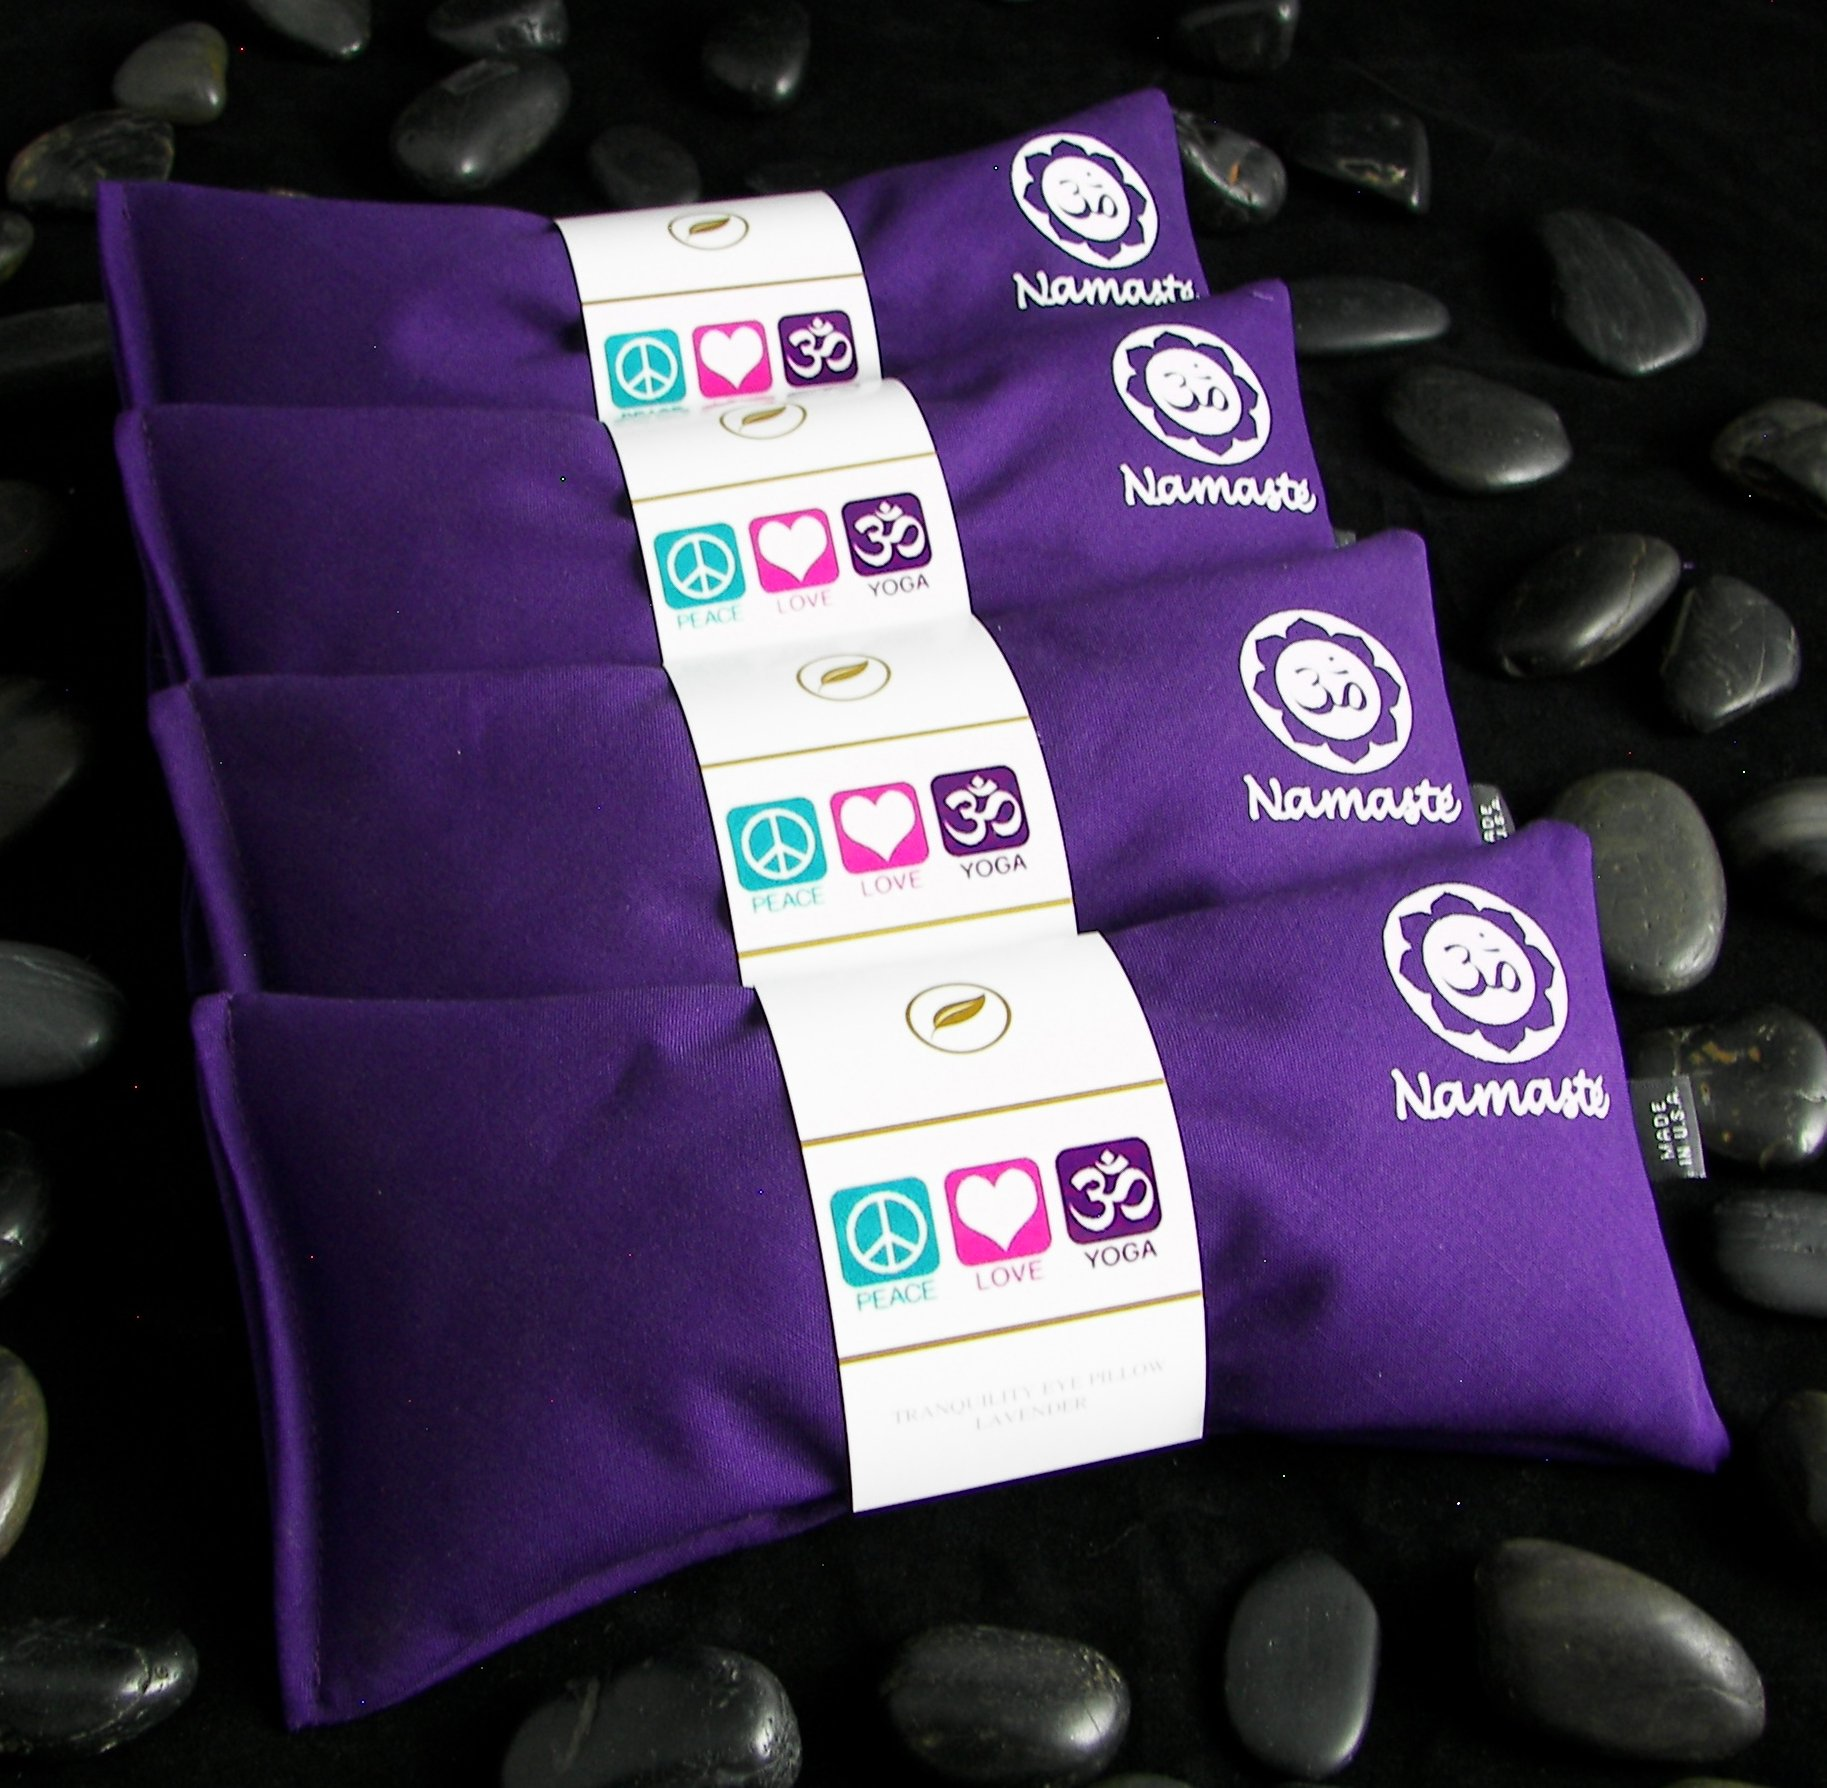 Happy Wraps Namaste Yoga Eye Pillows - Lavender Eye Pillows for Yoga - Weighted Aromatherapy Eye Pillow Mask for Yoga - Stress Relief and Relaxation Gifts Hot Cold Therapy - Set of 4 - Purple Cotton by Happy Wraps